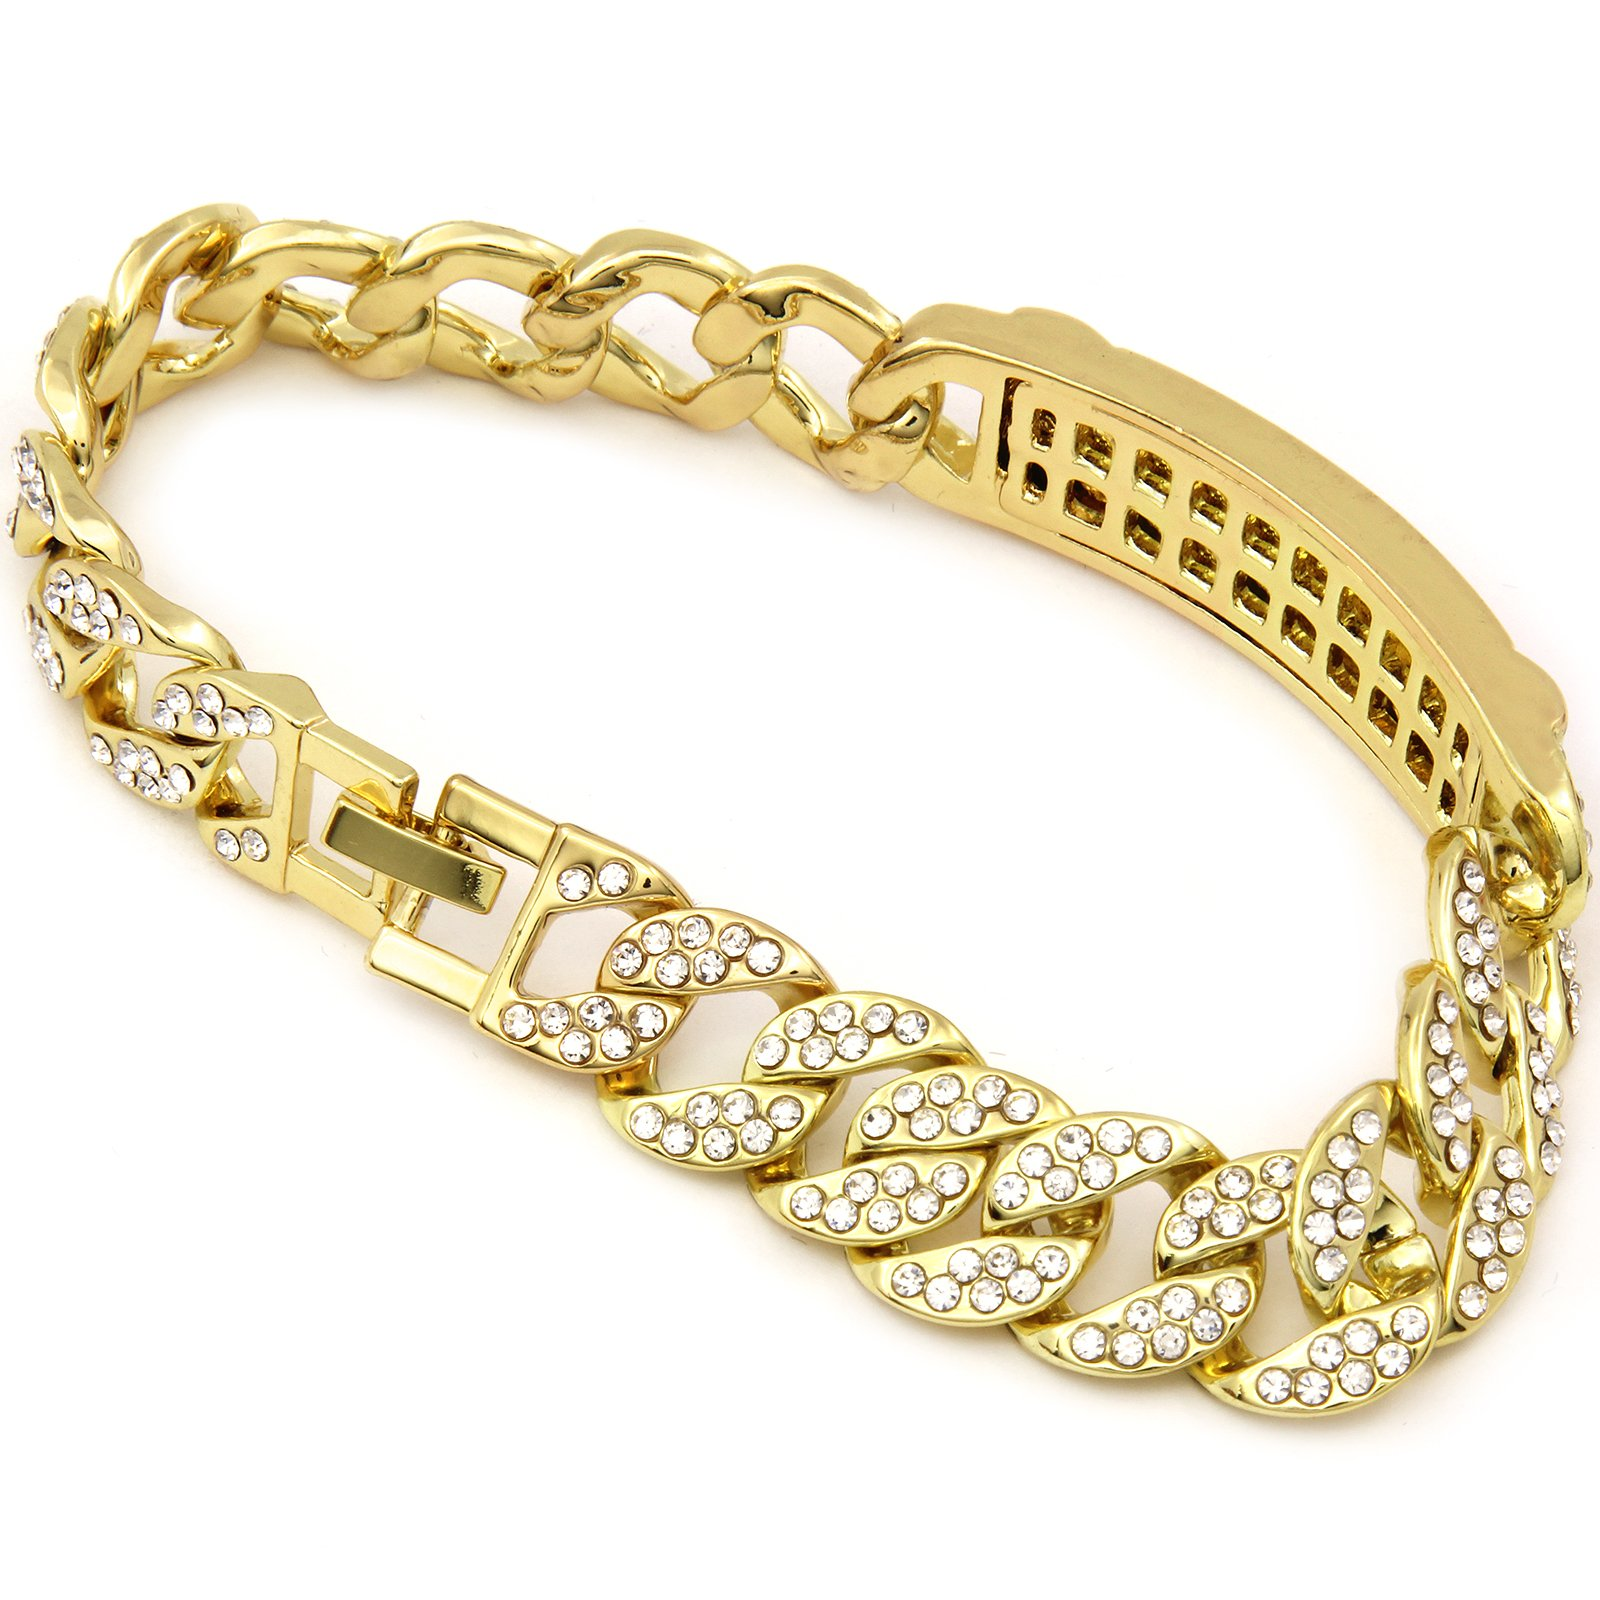 Men's Hip Hop 14k Gold Plated Iced Out Cz 15mm 9'' Bracelet Miami Cuban Style Chain Link (s)